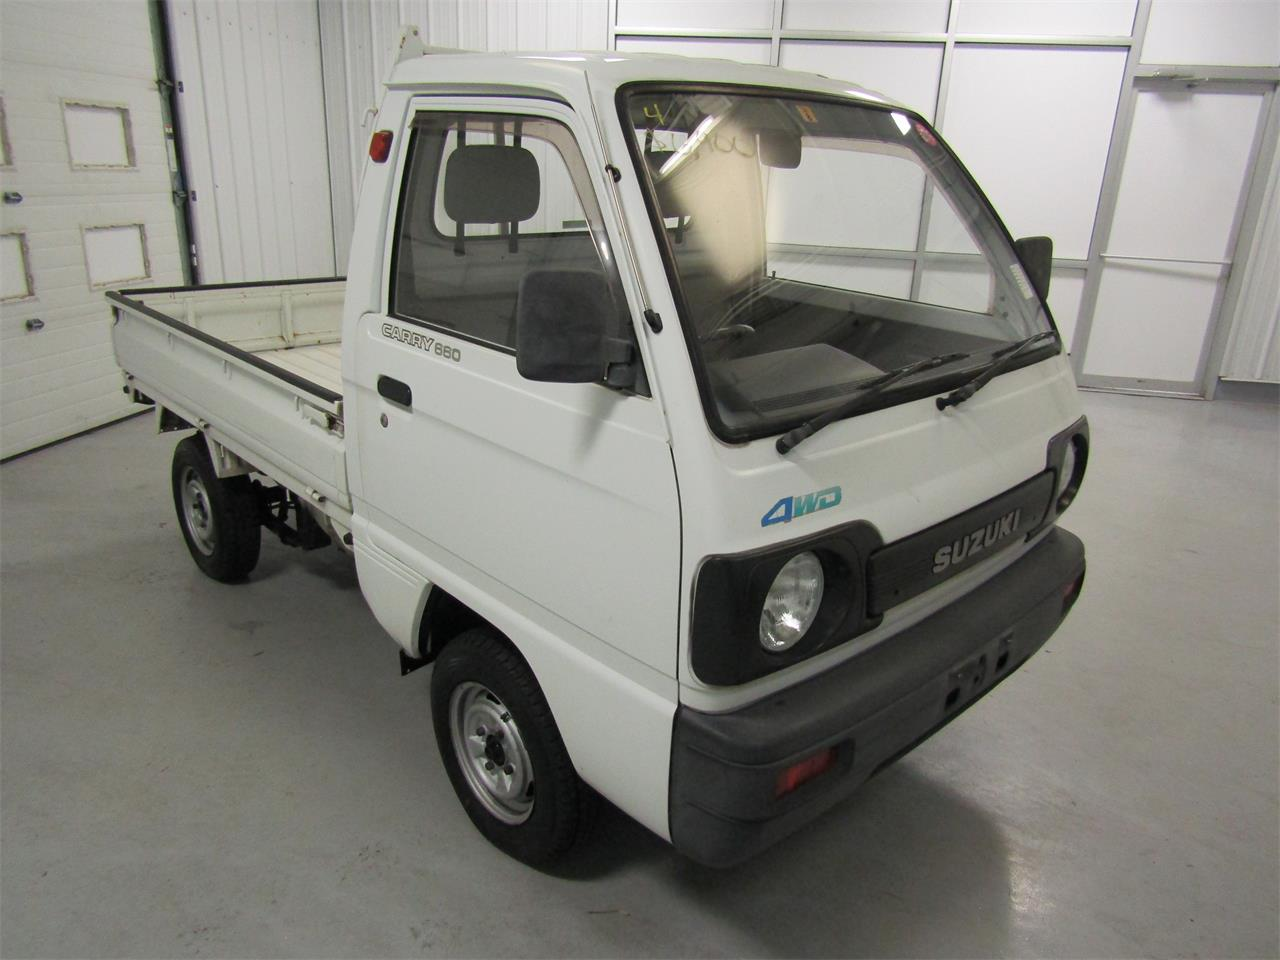 1991 Suzuki Carry for sale in Christiansburg, VA – photo 3